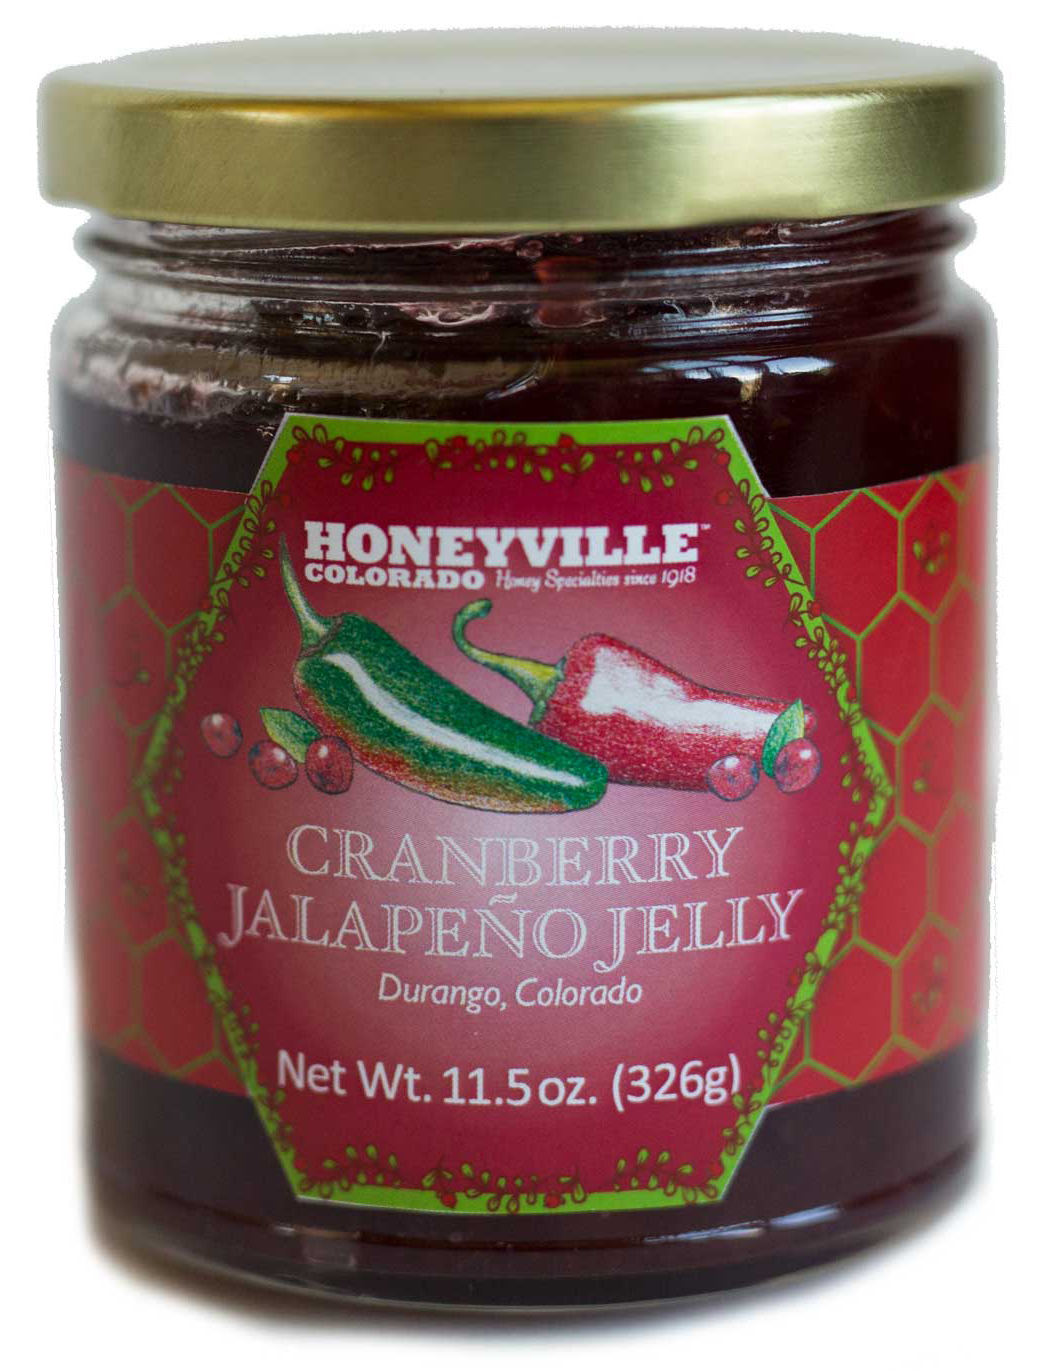 CRANBERRY JALAPENO JELLY